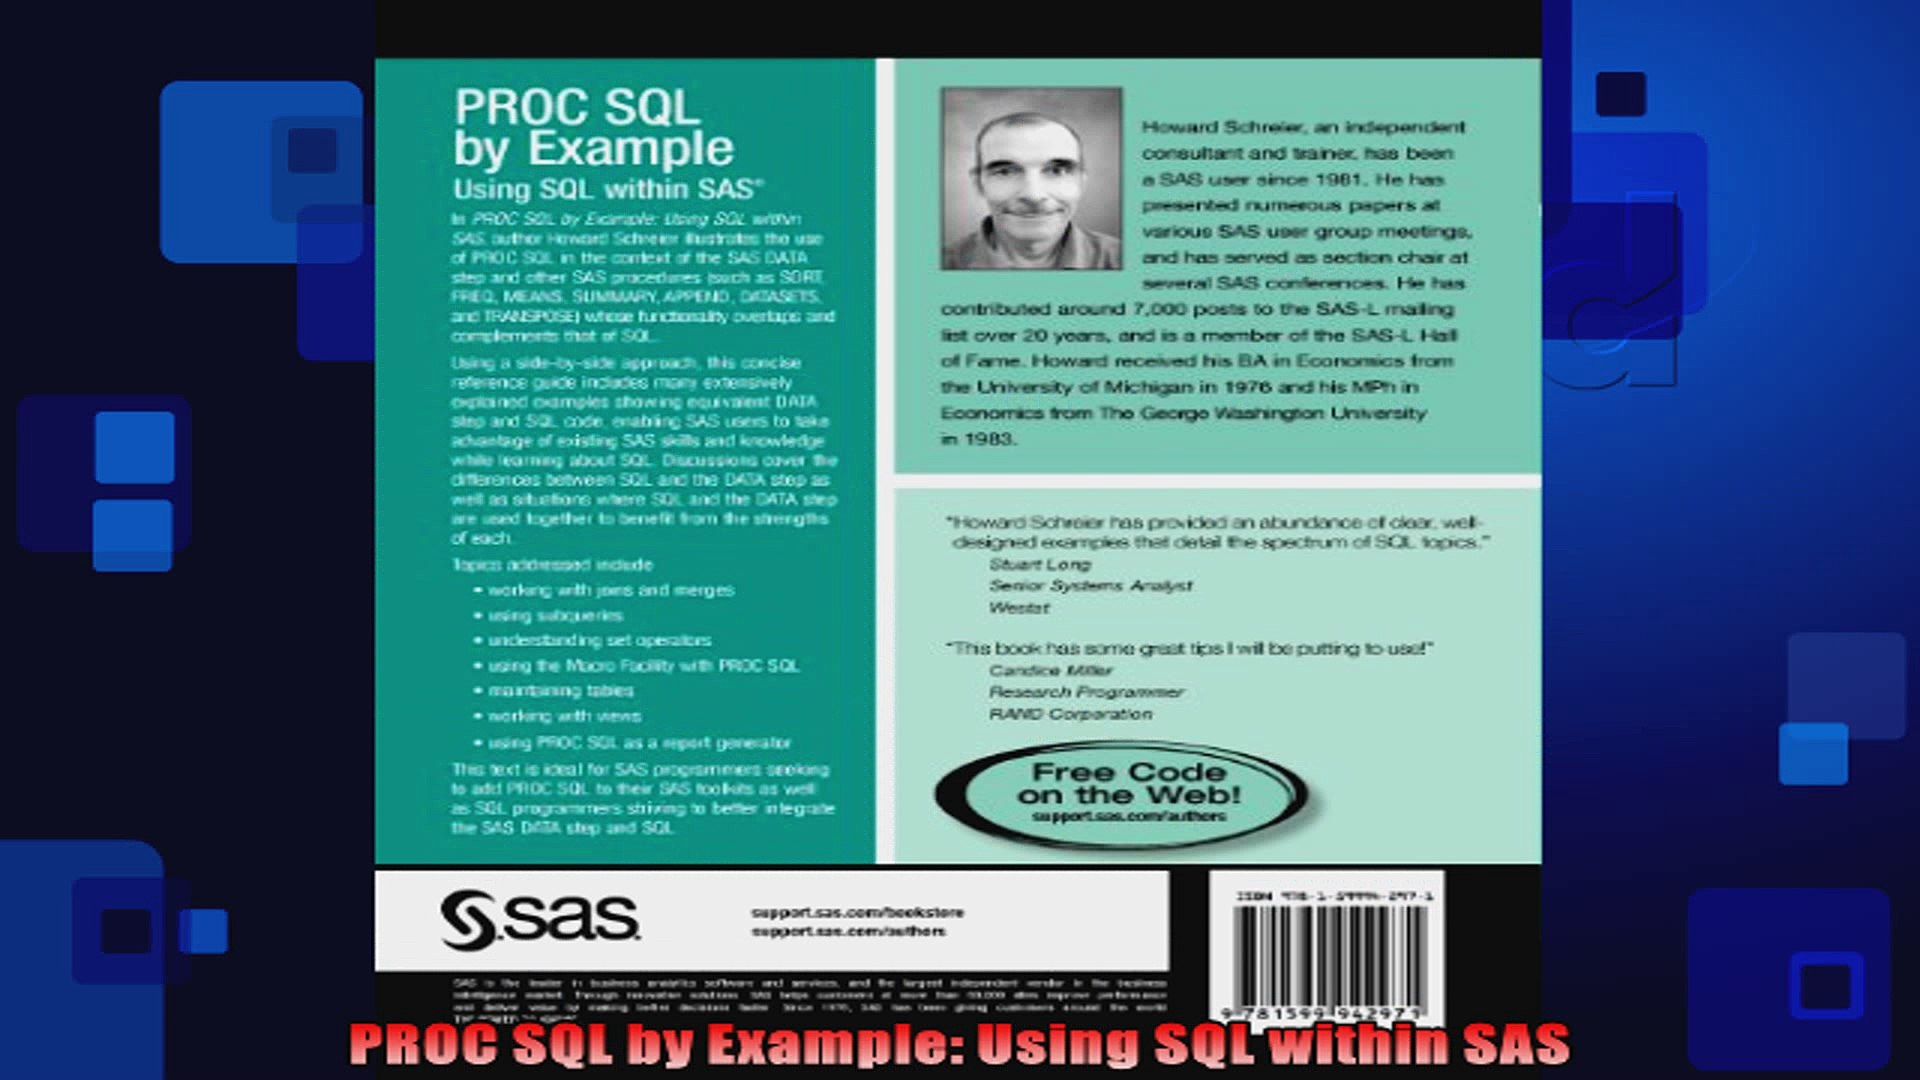 PROC SQL by Example Using SQL within SAS